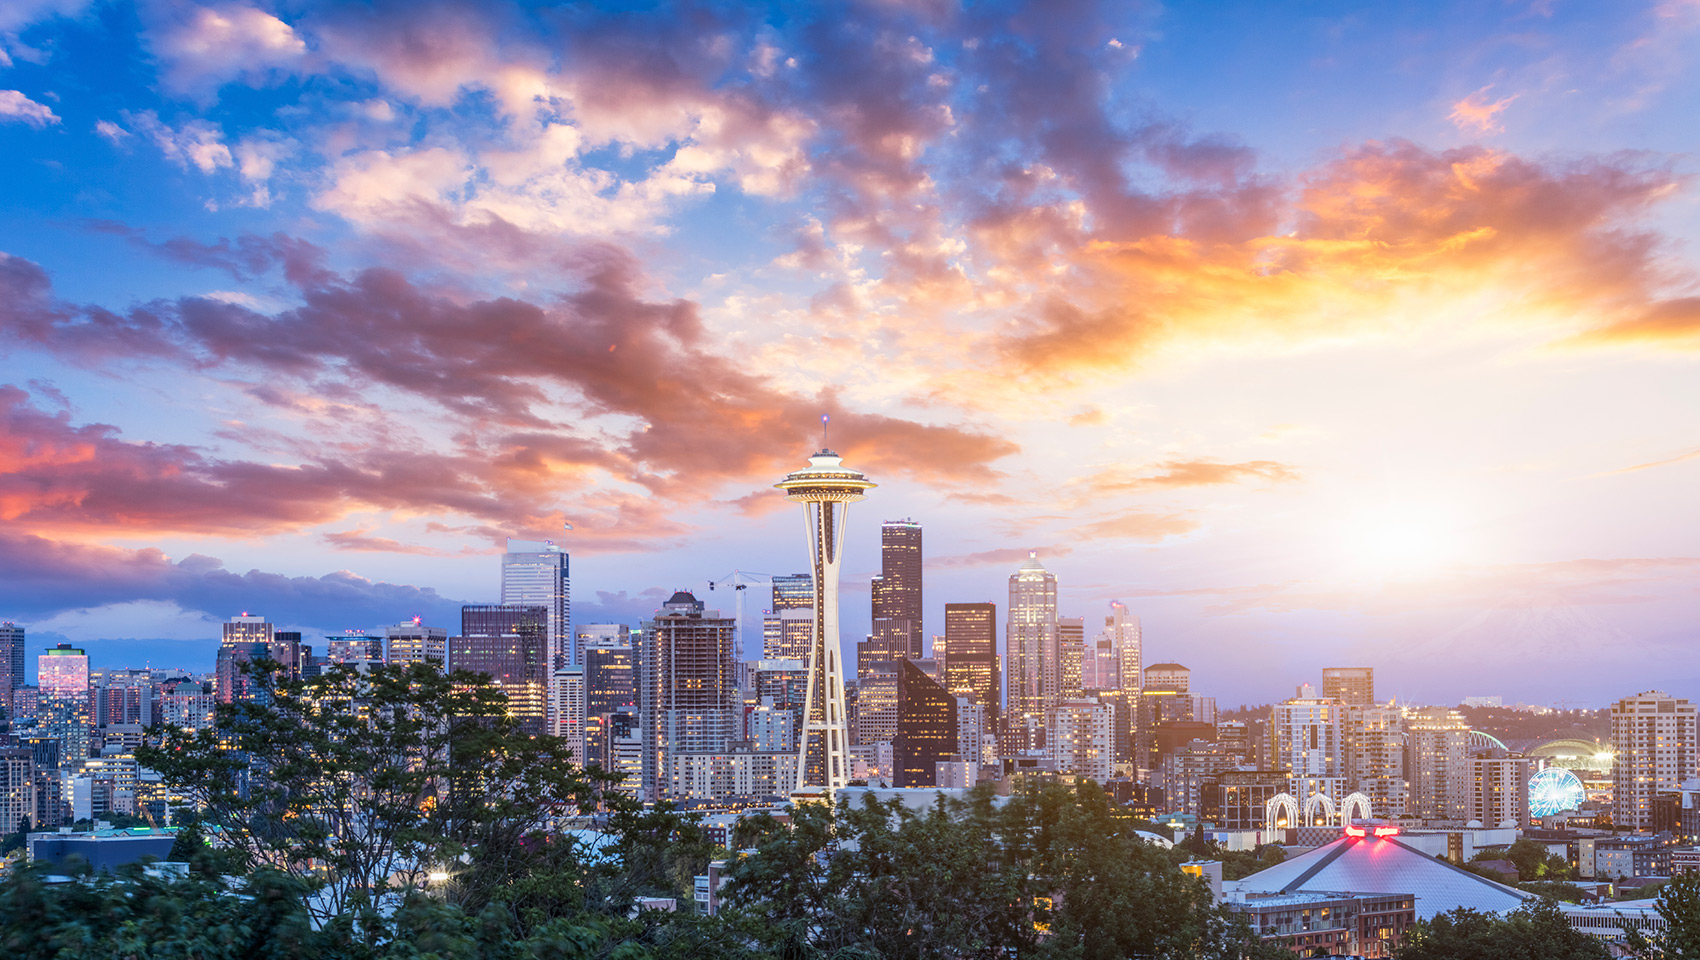 Pacific Gold Coast - 8-Day Cruise From Vancouver to Los Angeles Aboard the Seabourn Sojourn